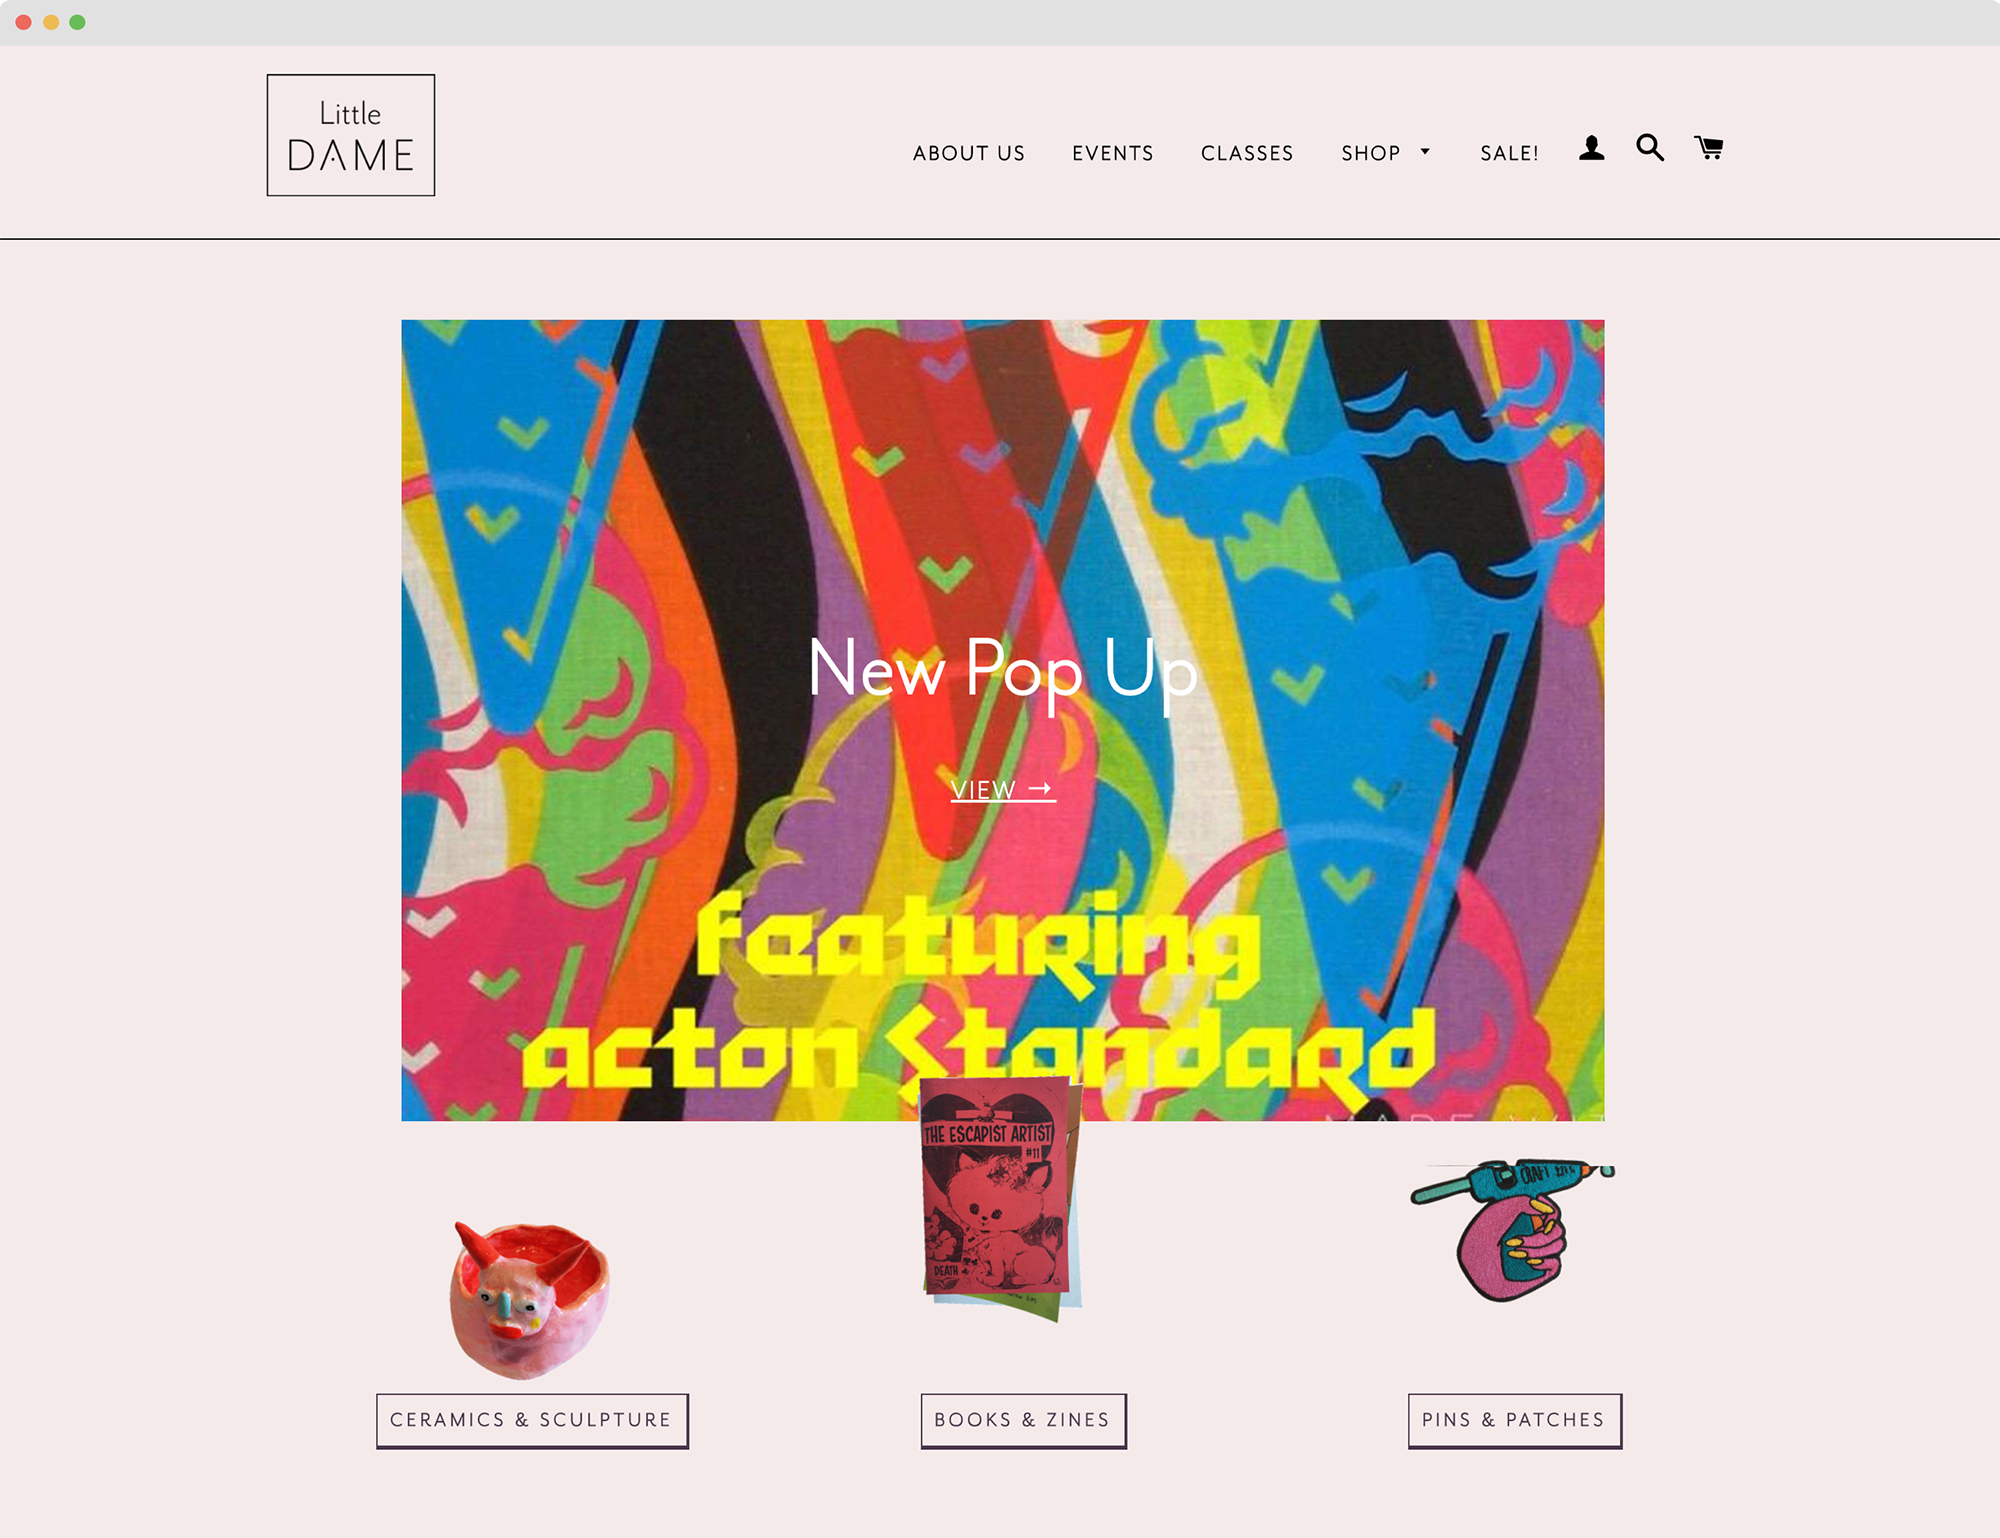 Little Dame Website Design | Feels Design Studio | Annie Szafranski